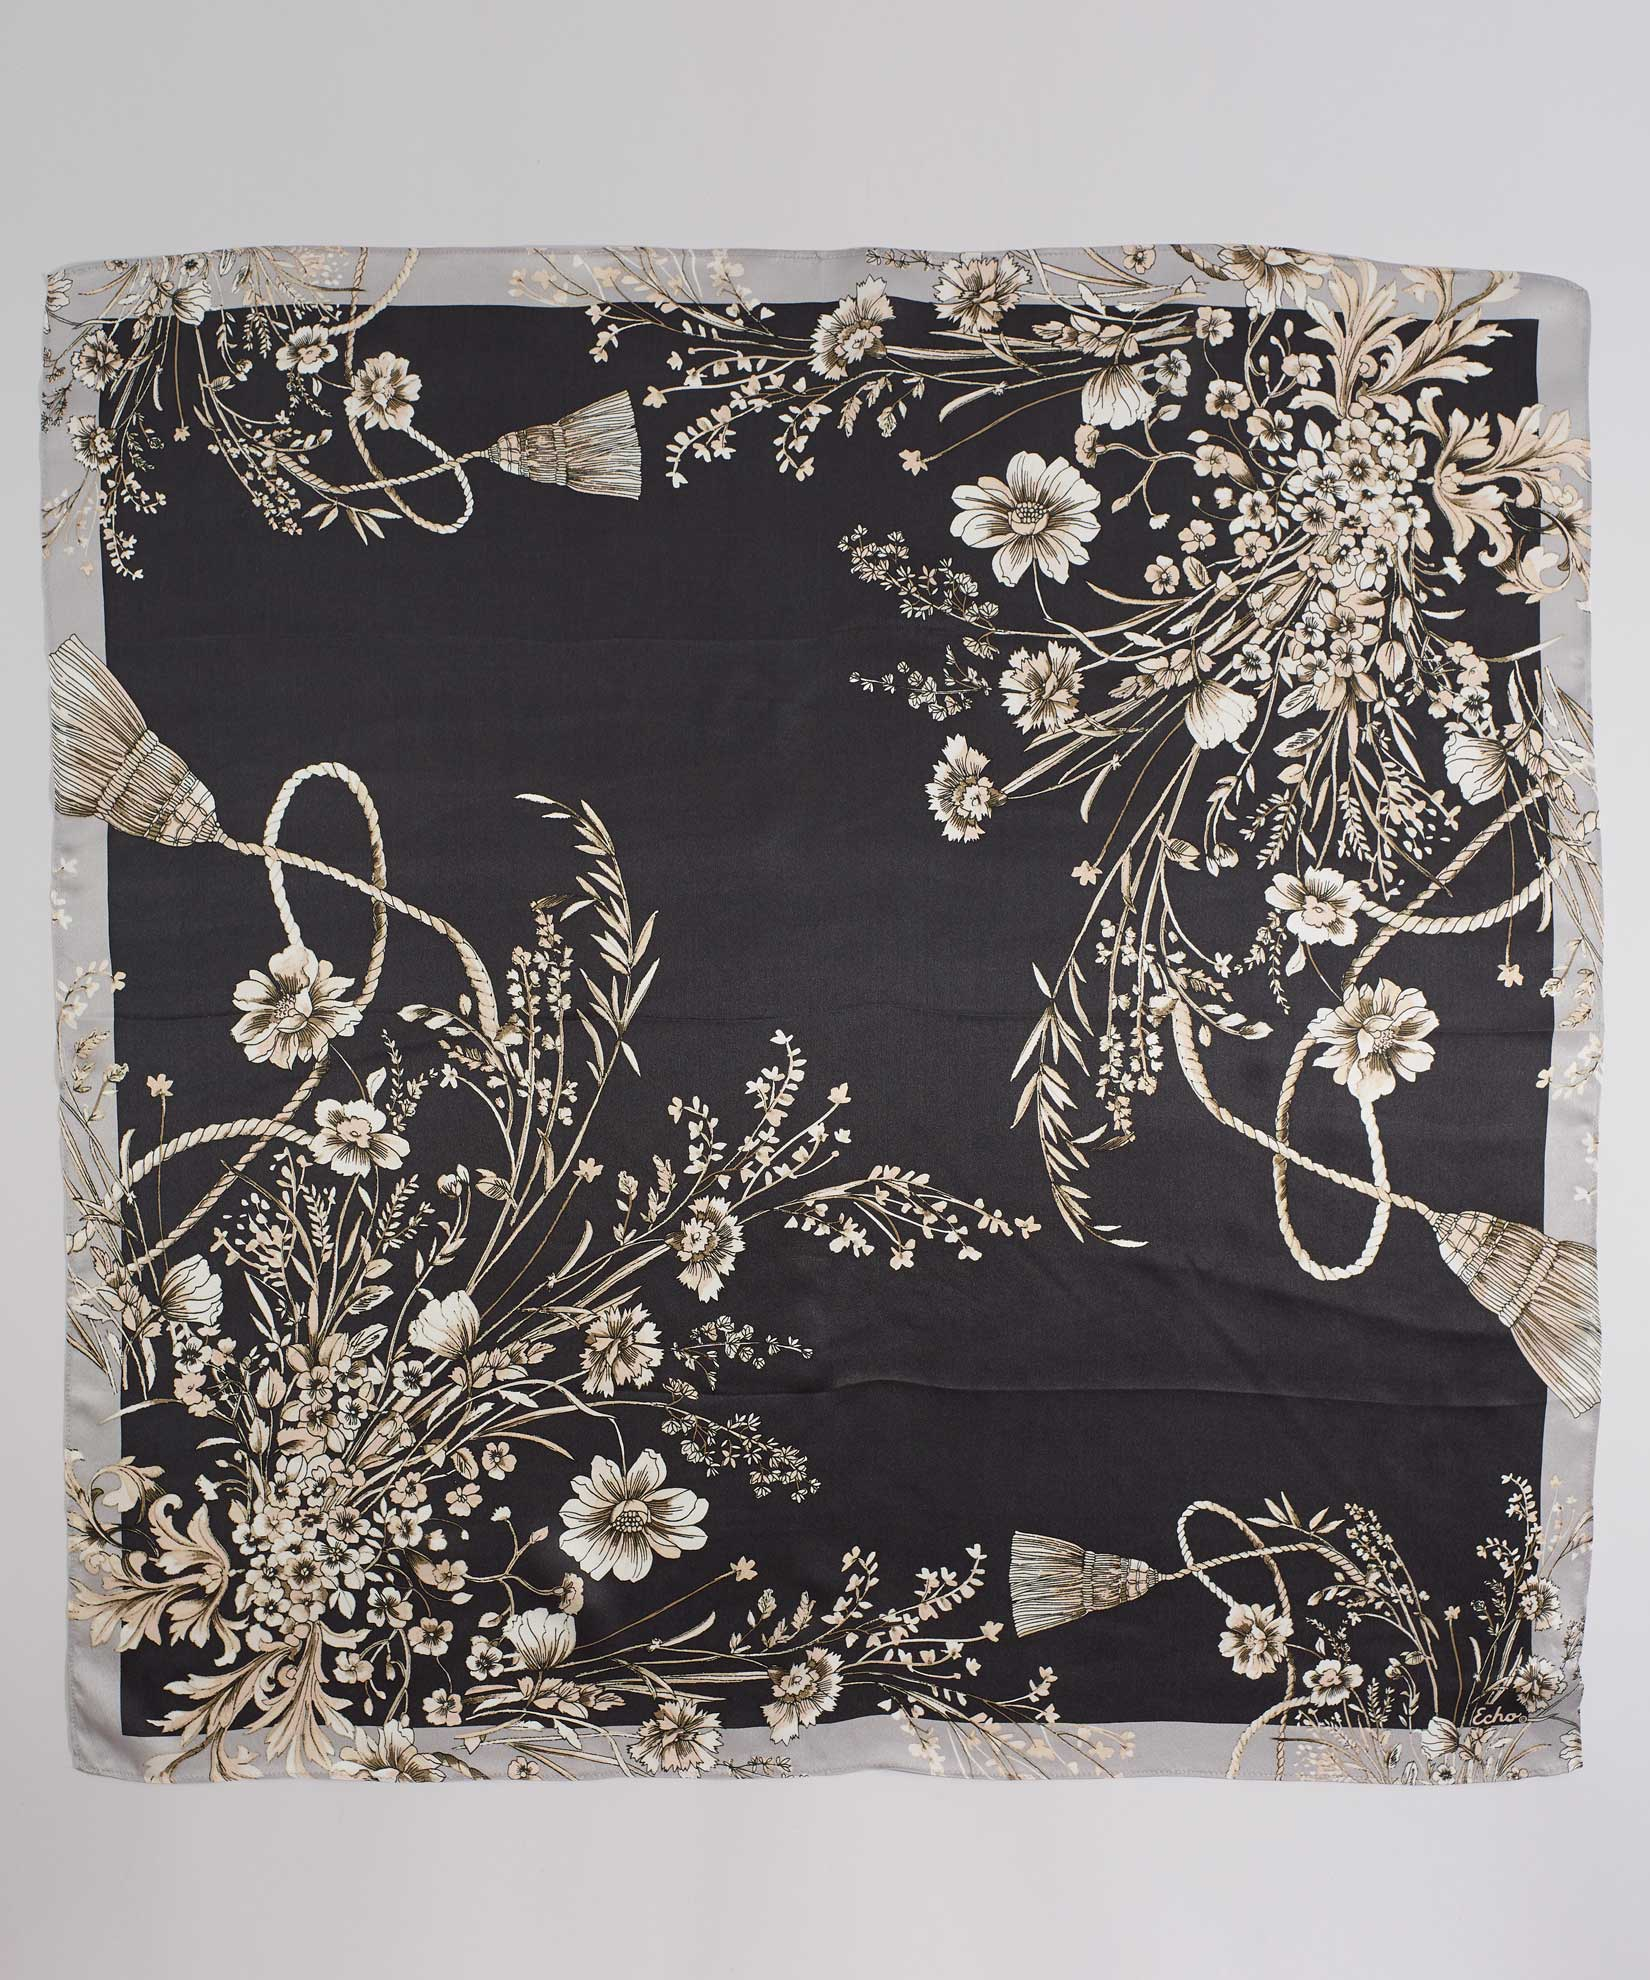 Black - Floral Tassel Silk Square